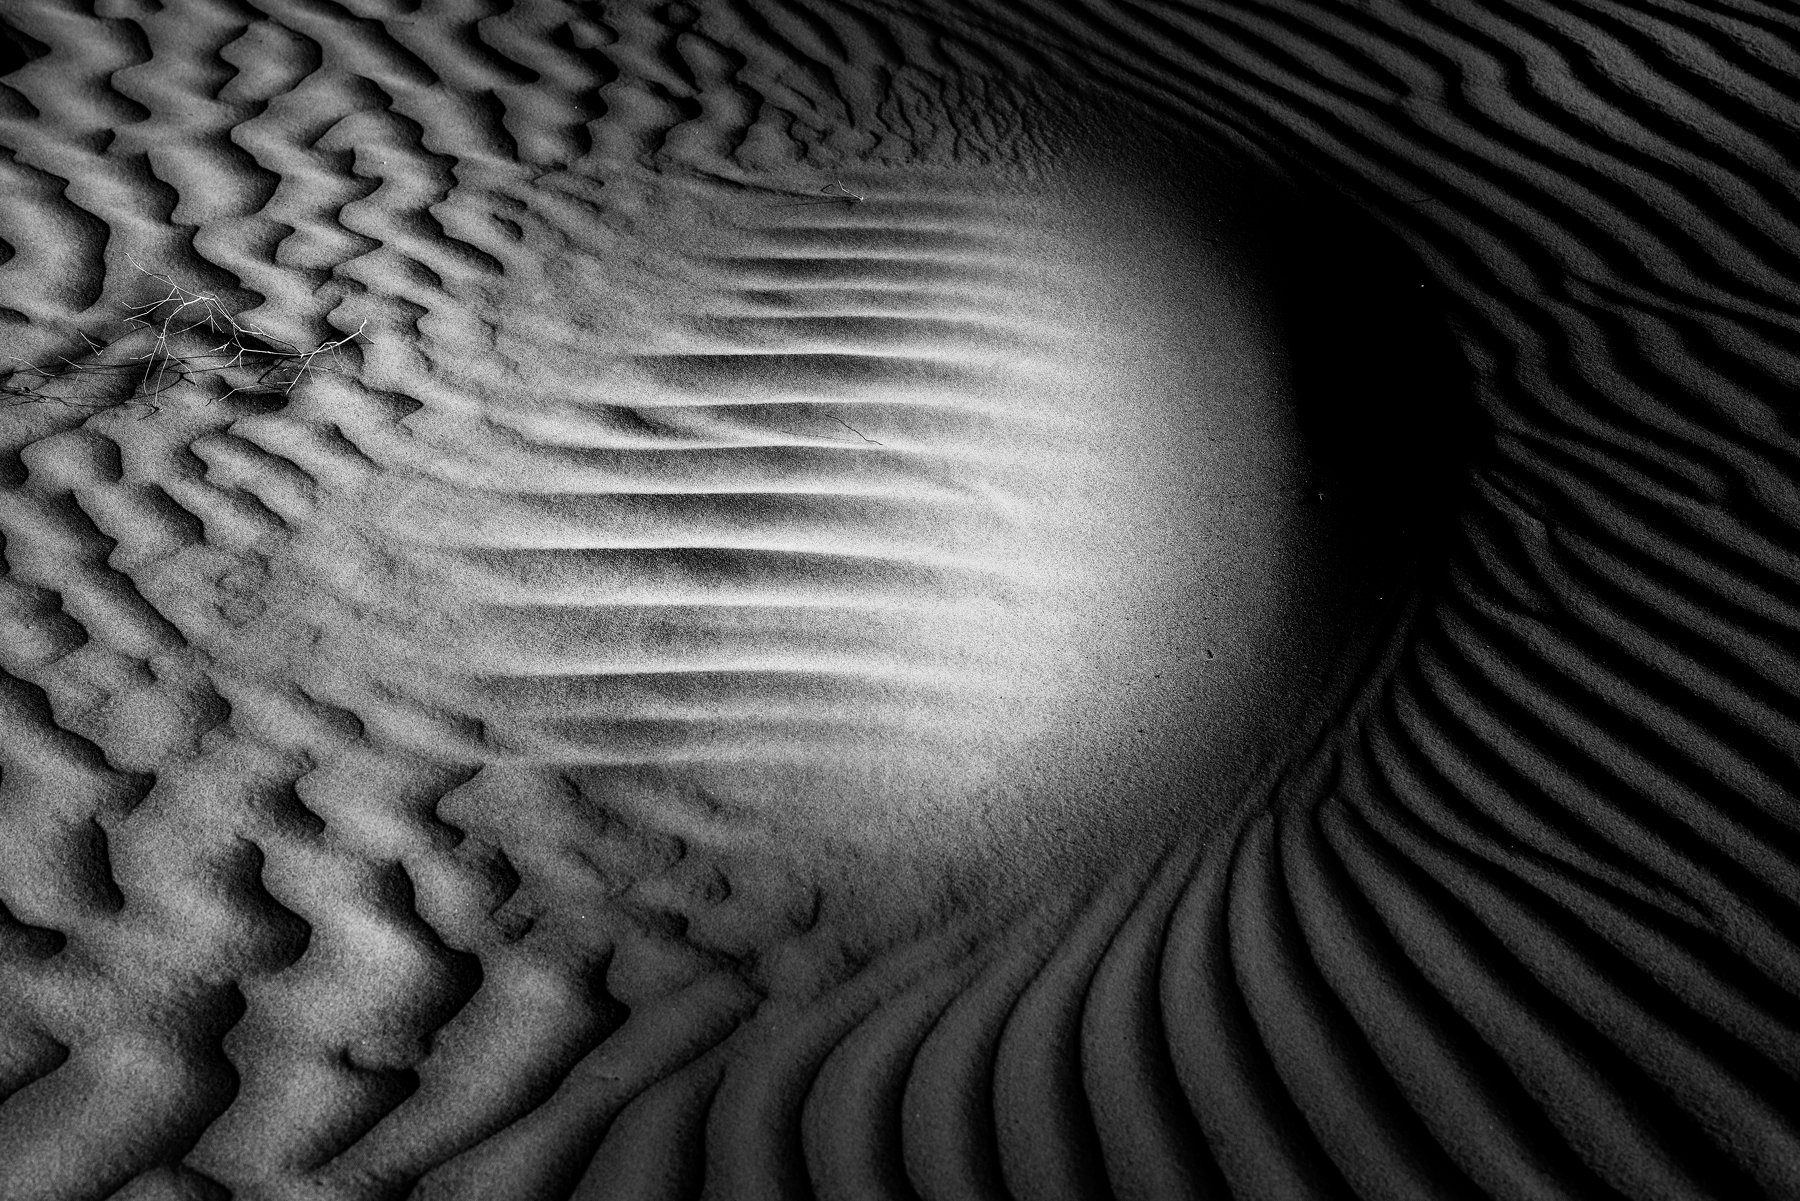 Sand,composition,black and white, najem hussein